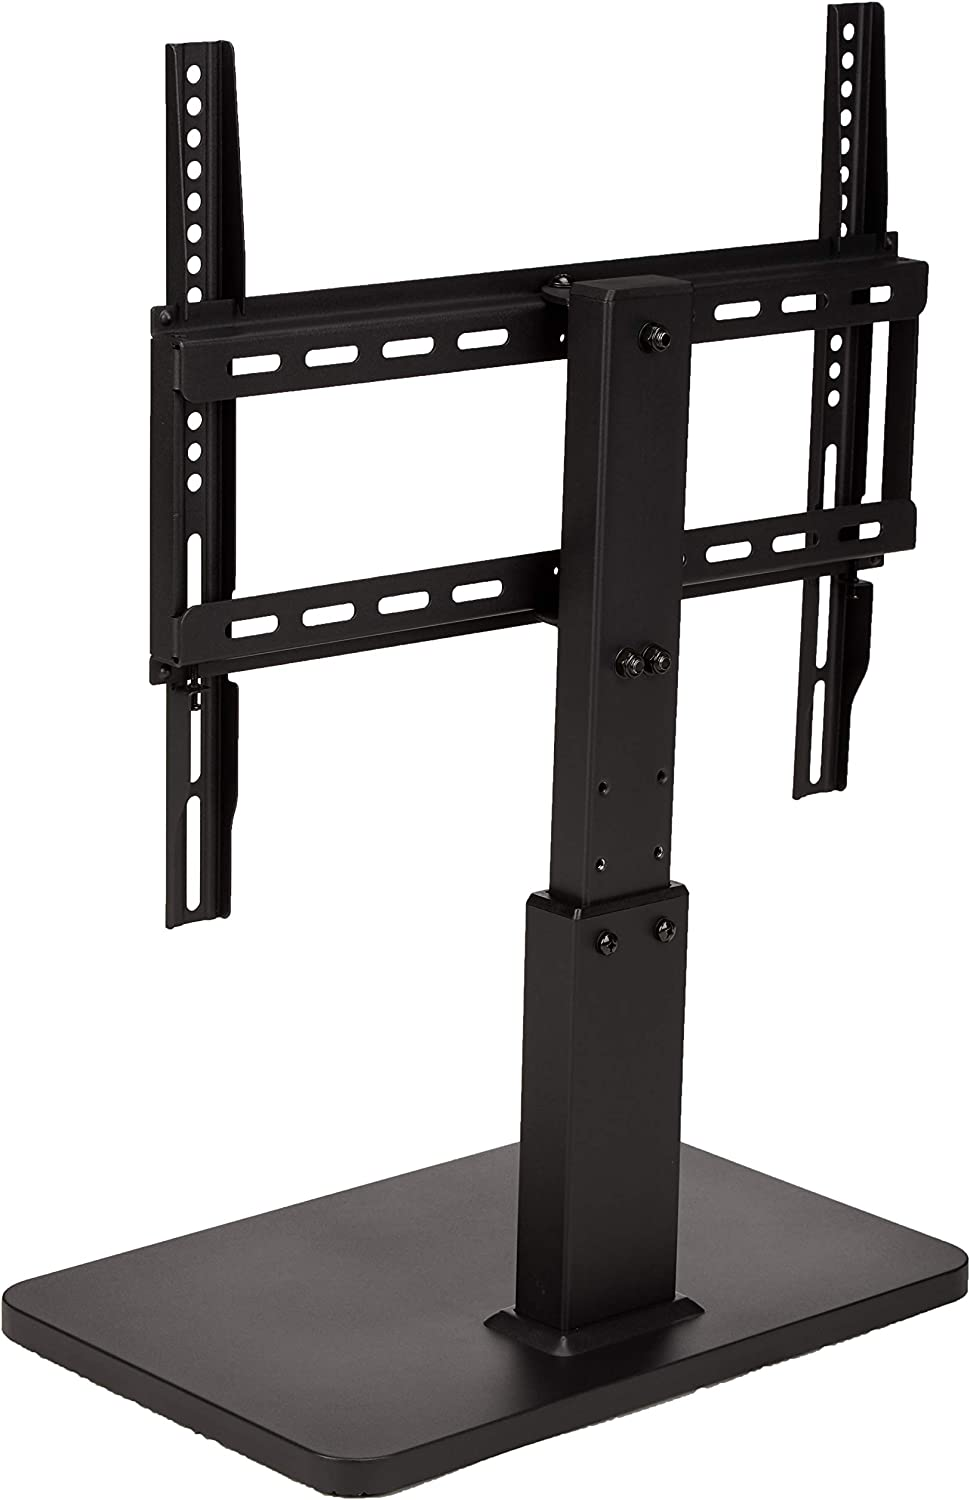 AmazonBasics Pedestal TV Mount for 32-65